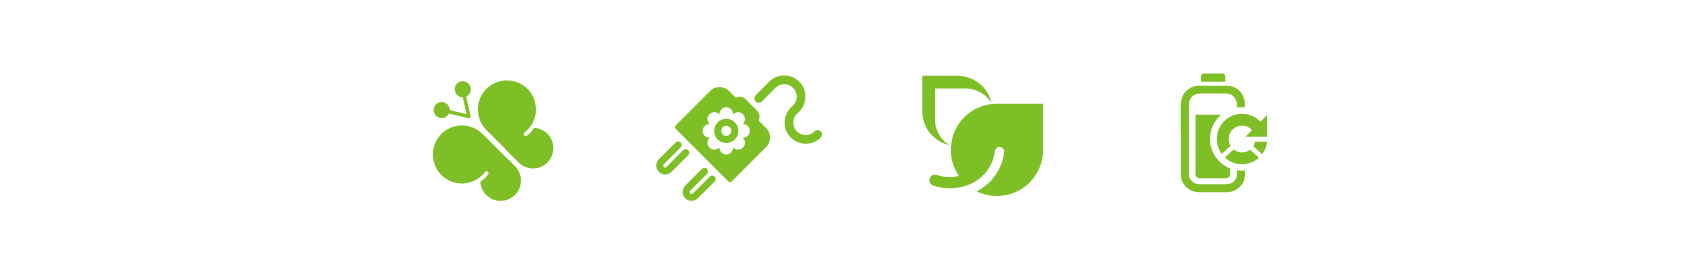 set of environmental icons in green color